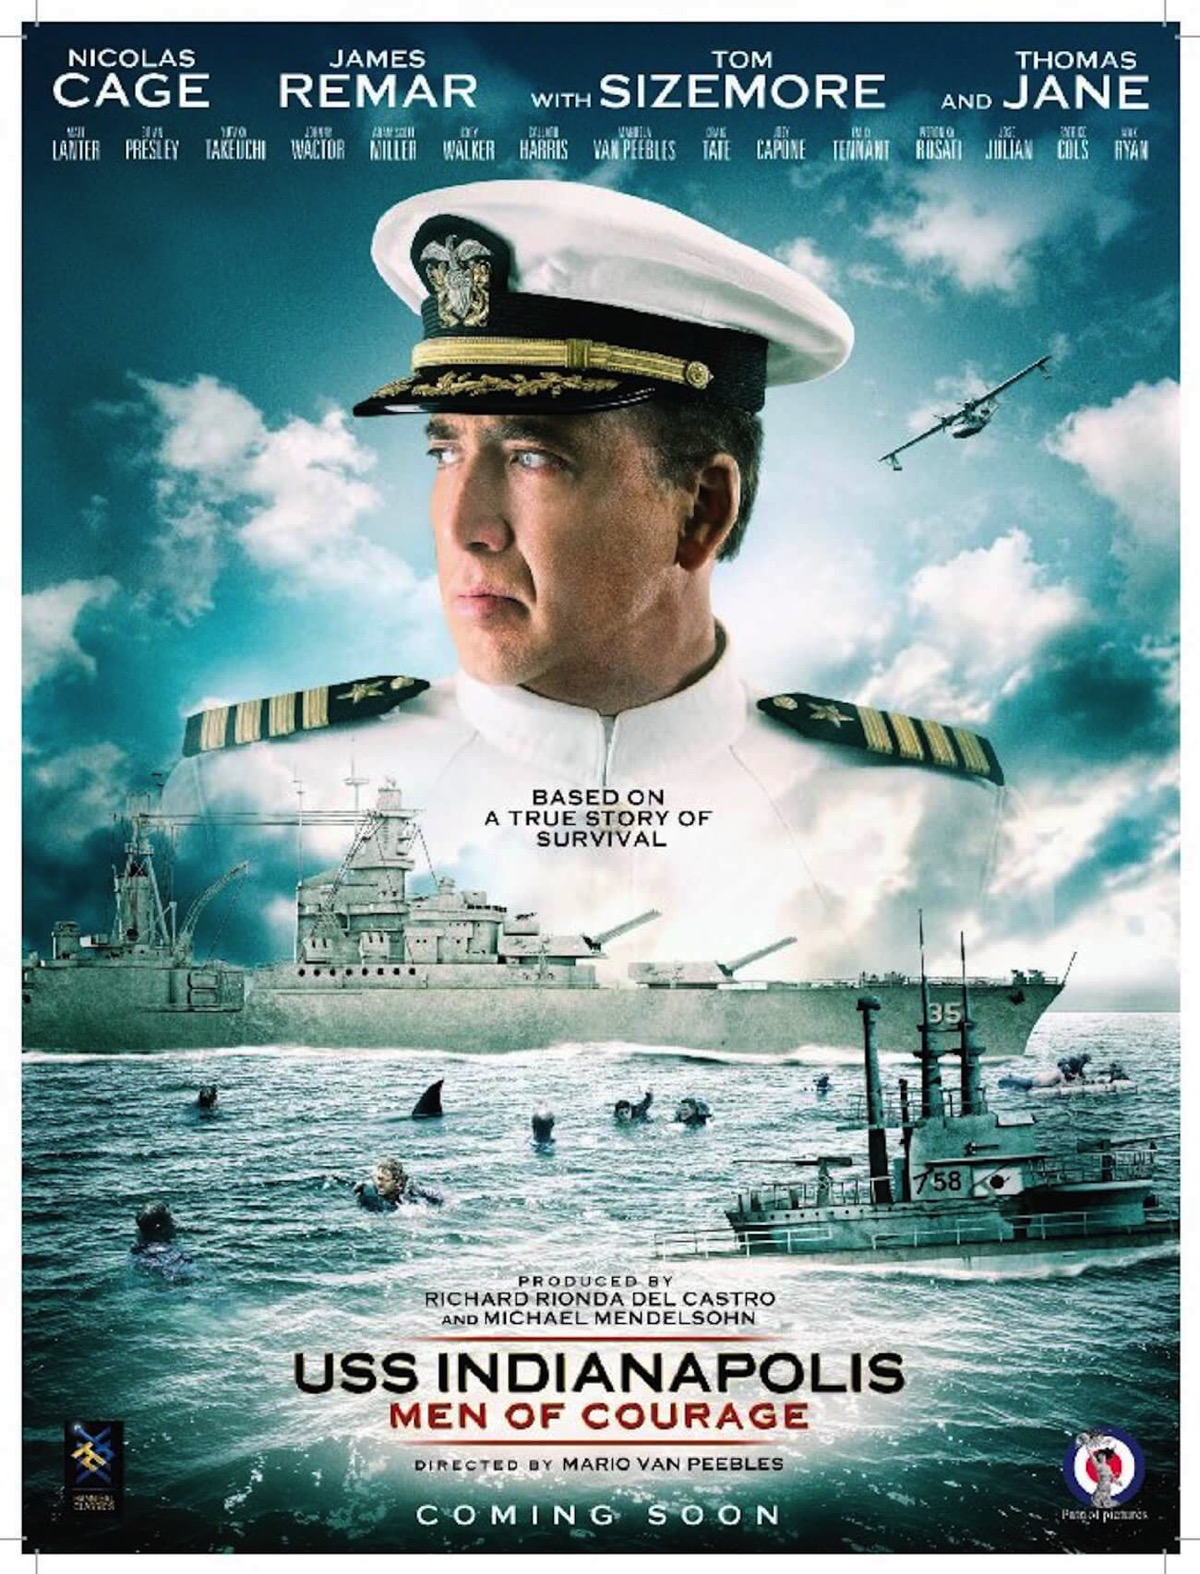 Uss indianapolis men of courage poster